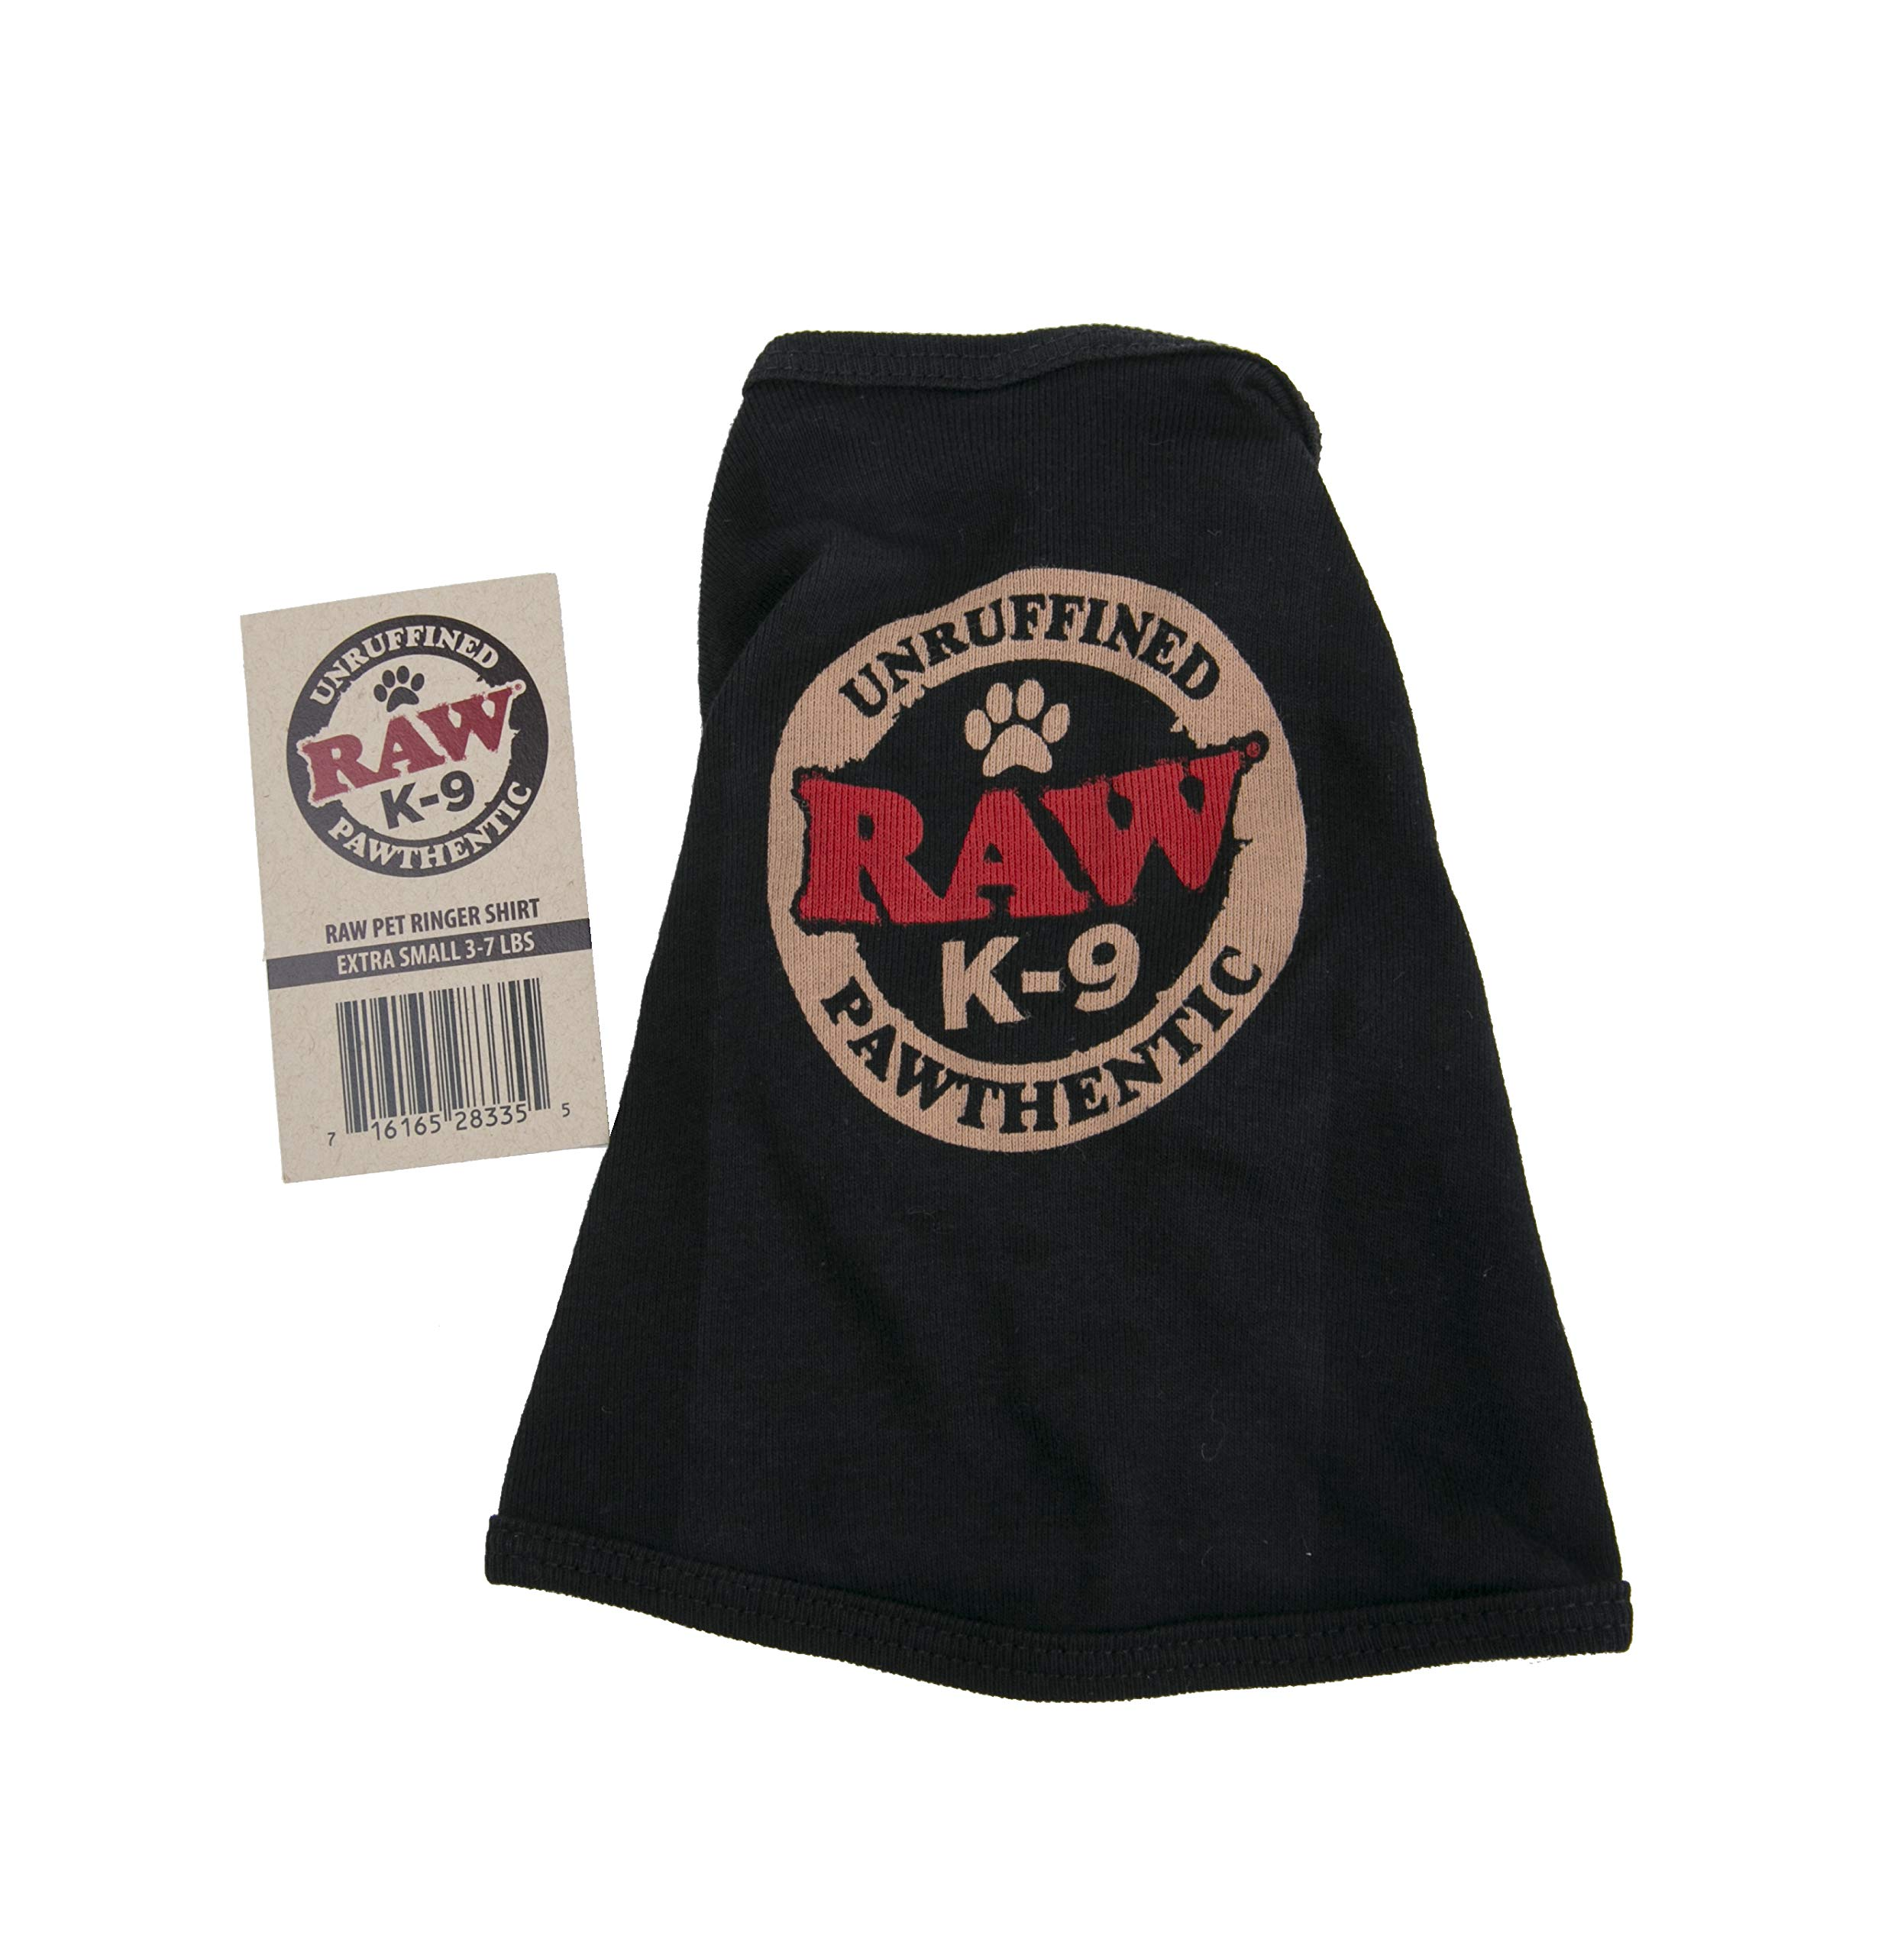 RAW Natural Rolling Papers - Dog K-9 Ringer Shirt - (Extra Small)